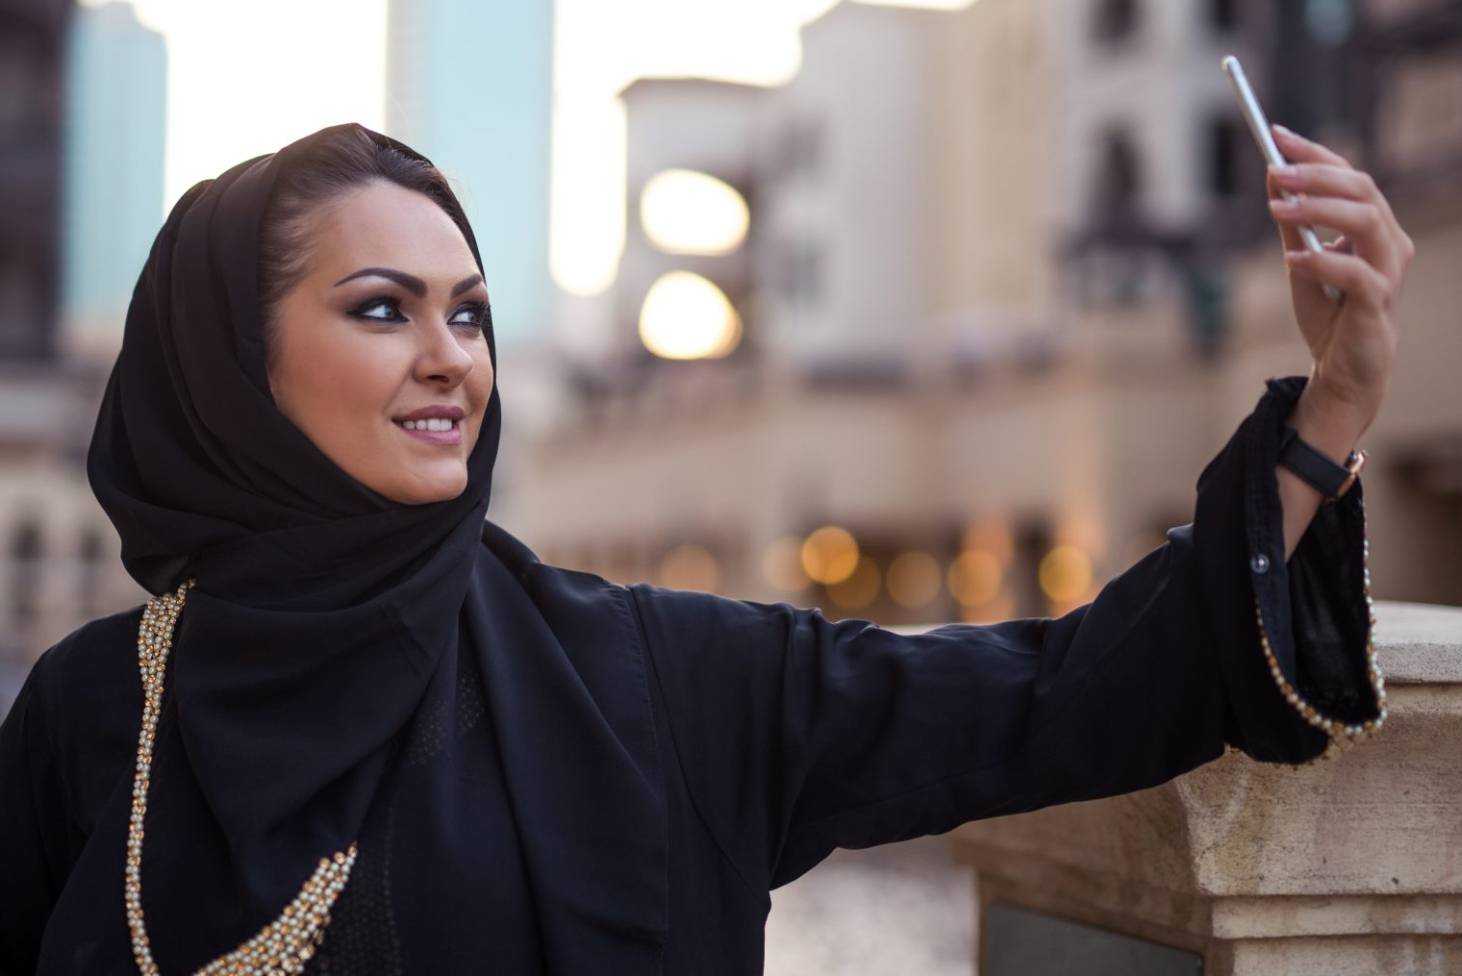 I don't want my parents to arrange my marriage - are Muslim